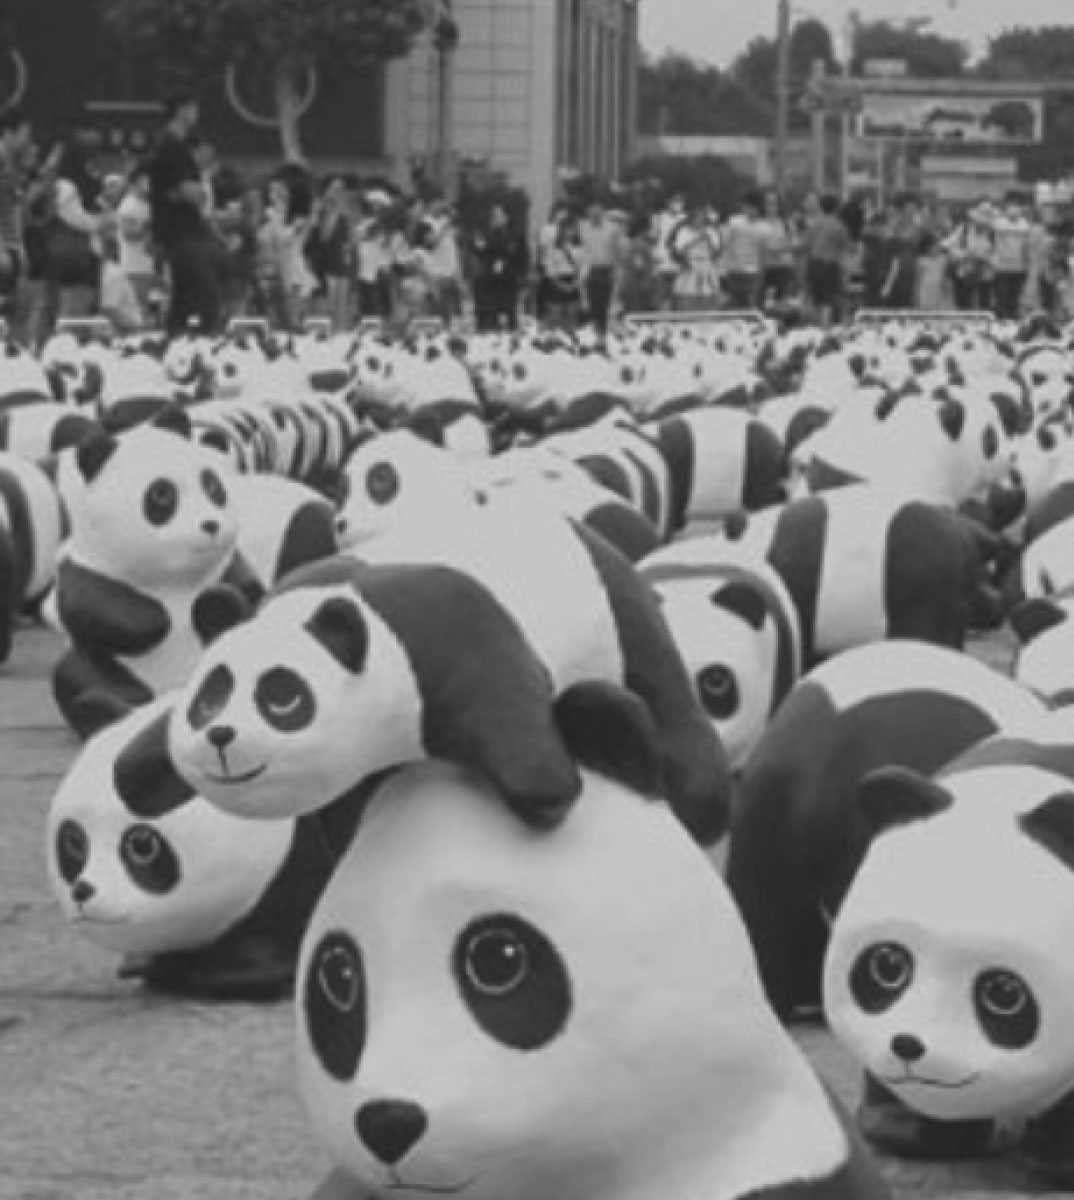 A bunch of random Panda statues scattered around a park area